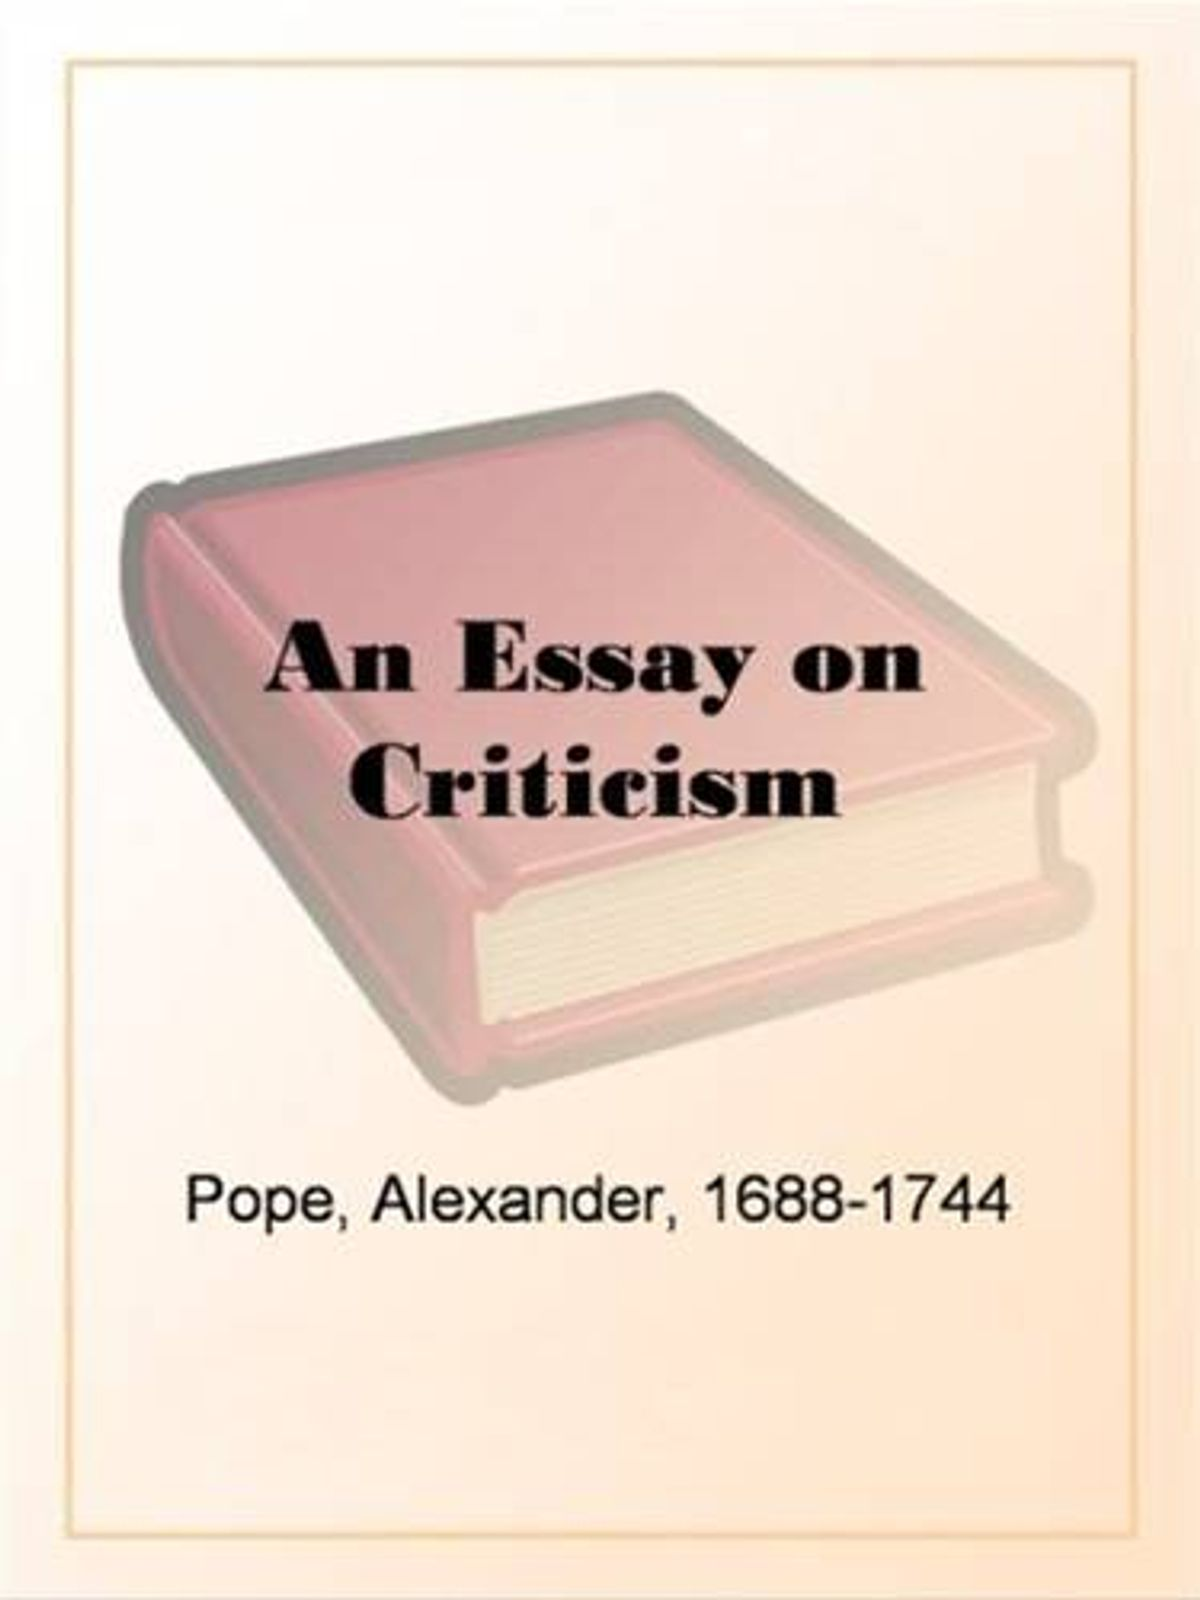 008 An Essay On Criticism Sensational Lines 233 To 415 Meaning Summary Sparknotes Full